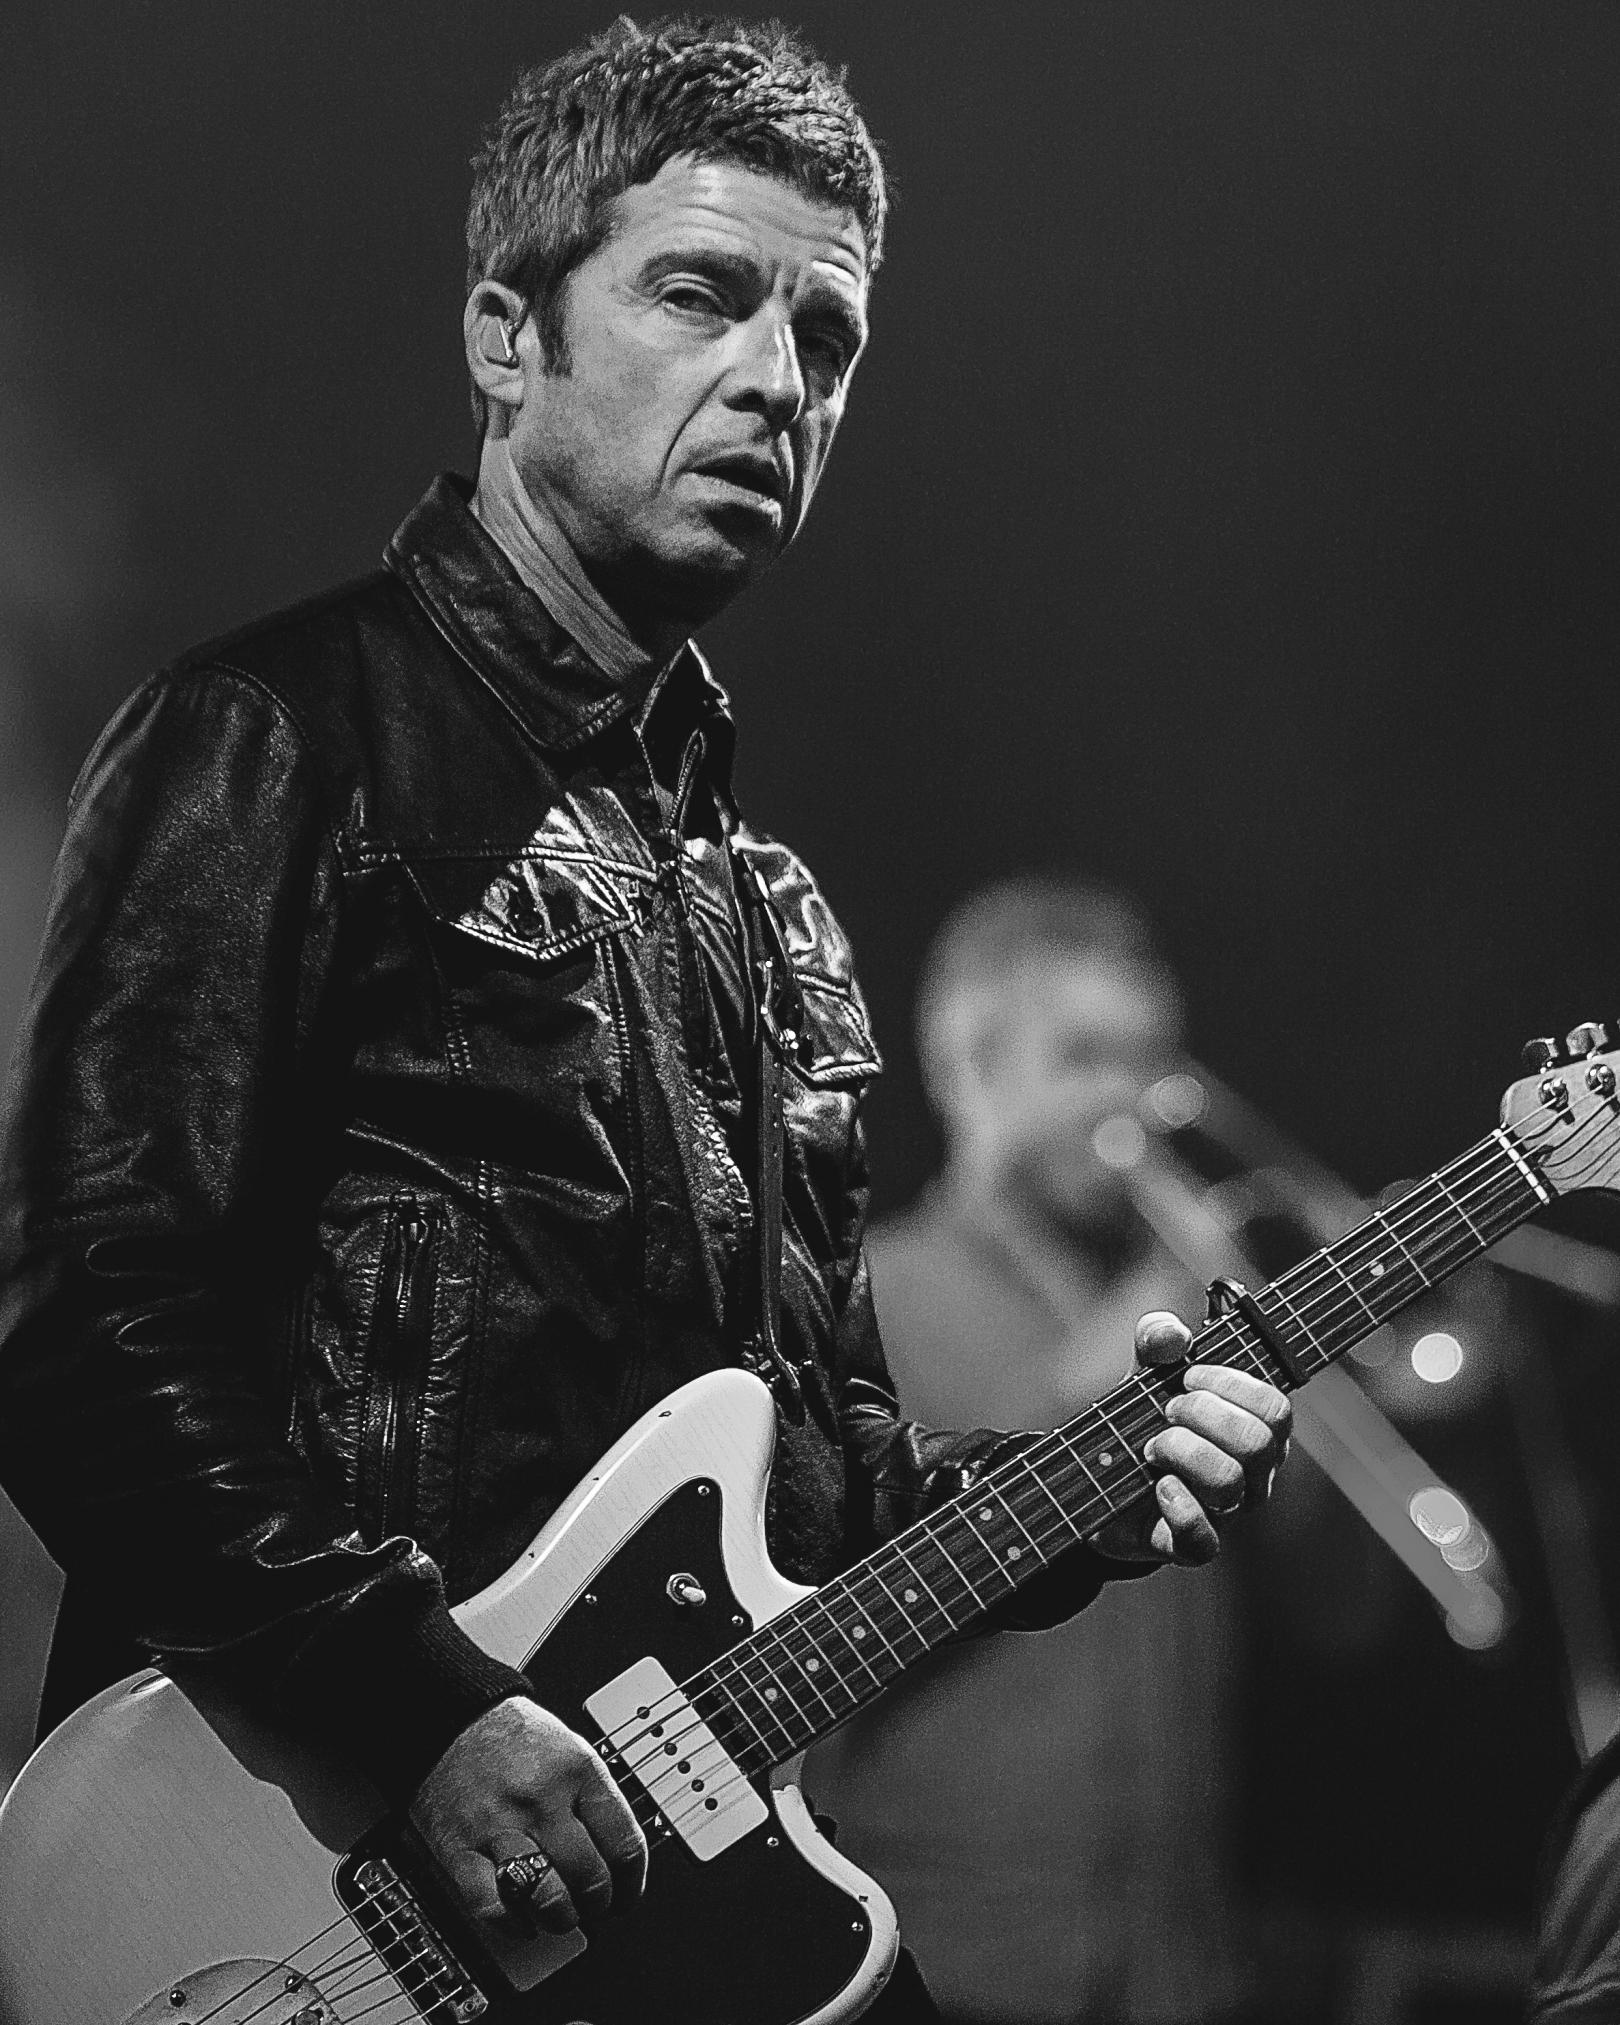 Noel Gallagher Oasis Photography